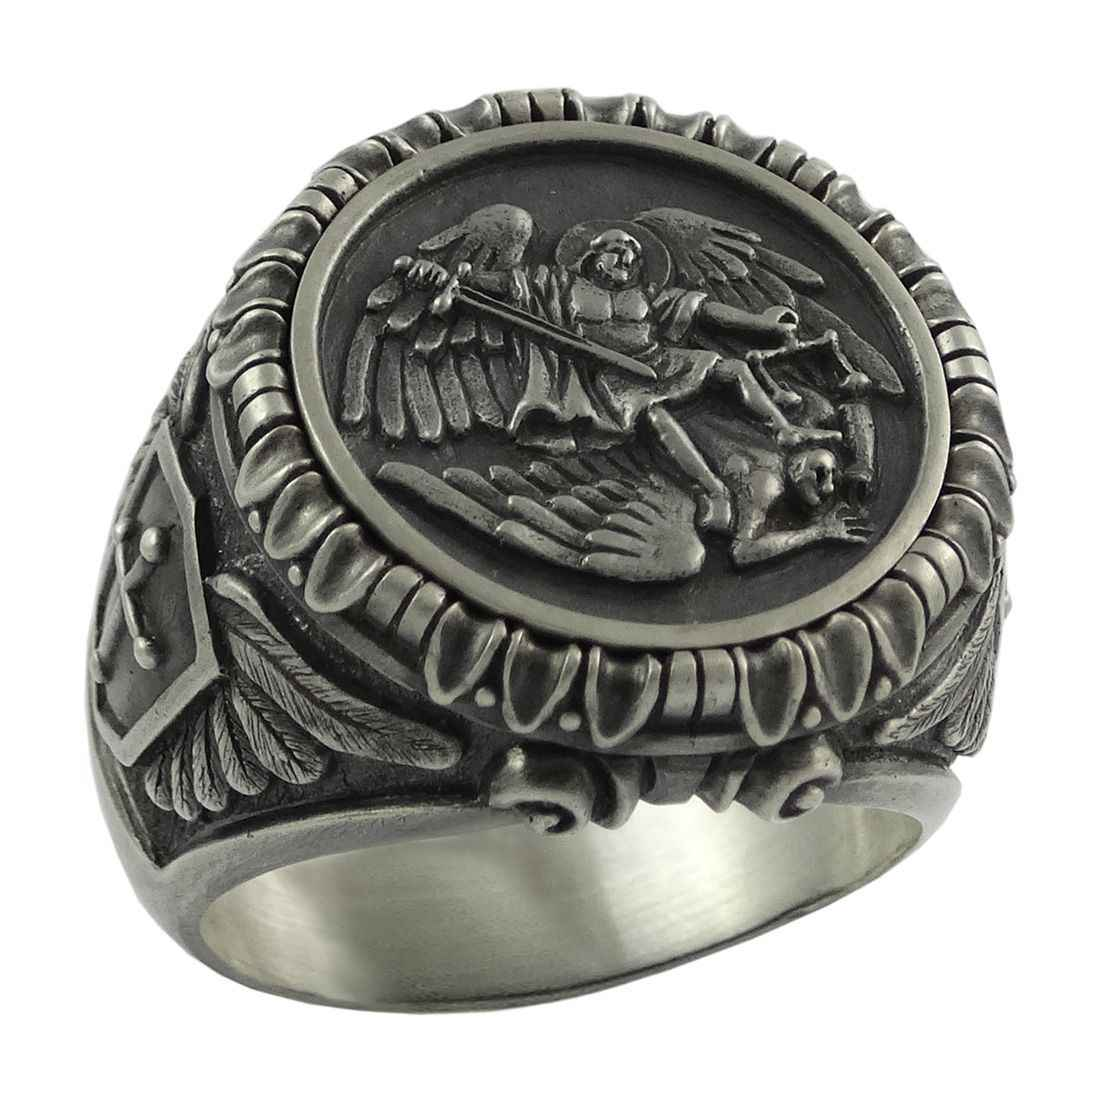 New Save and Protect Archangel Biker Rings Mens Knigts Templar 316L Stainless Steel Ring Guardian Angel Jewelry